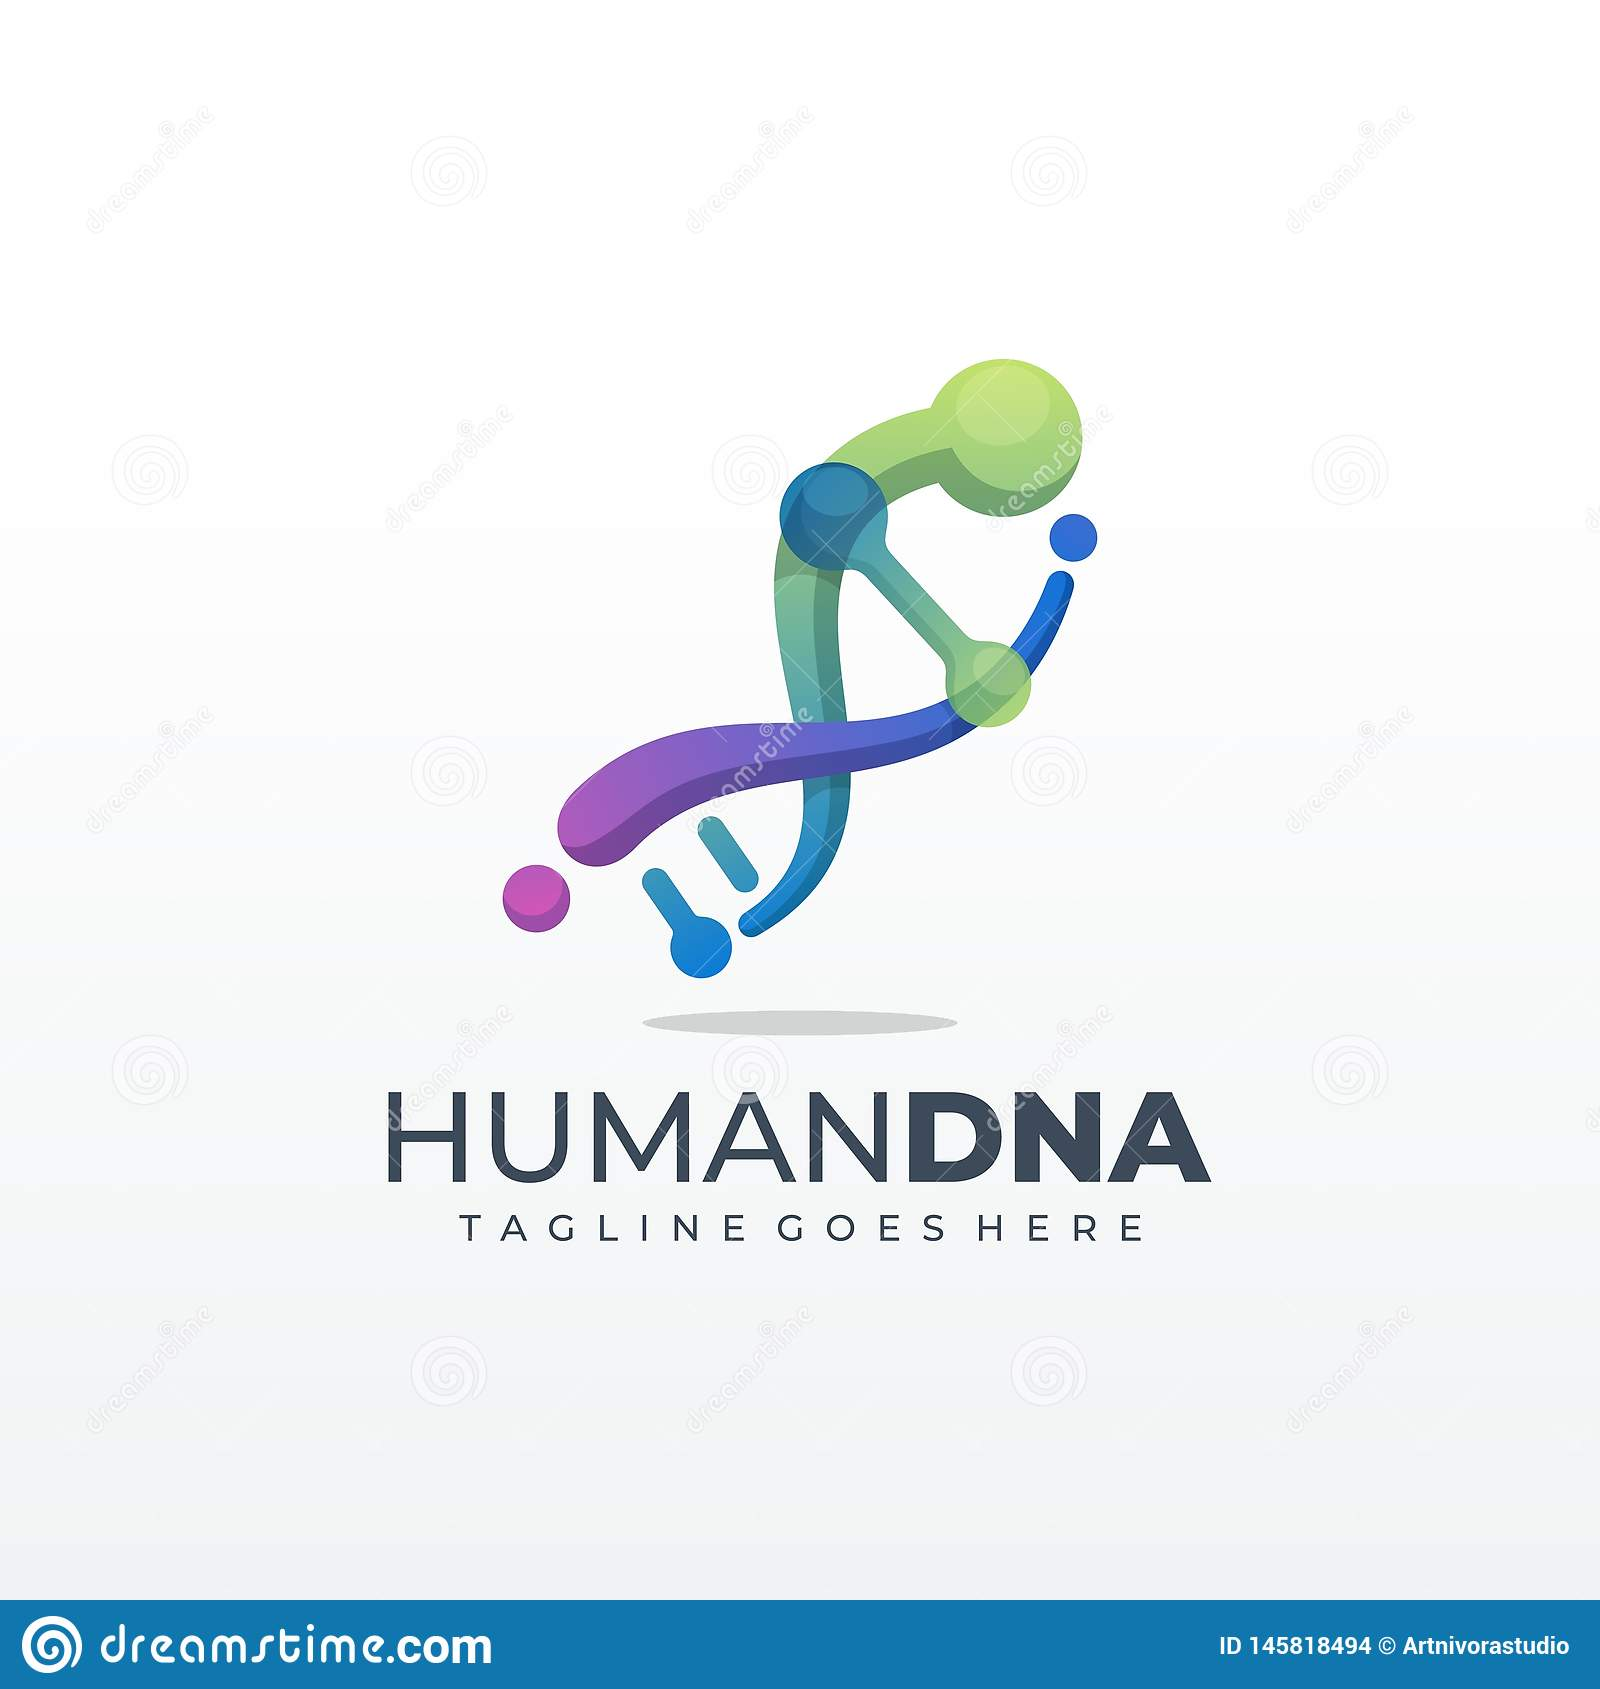 DNA genetic symbol running and jumping man icon Template